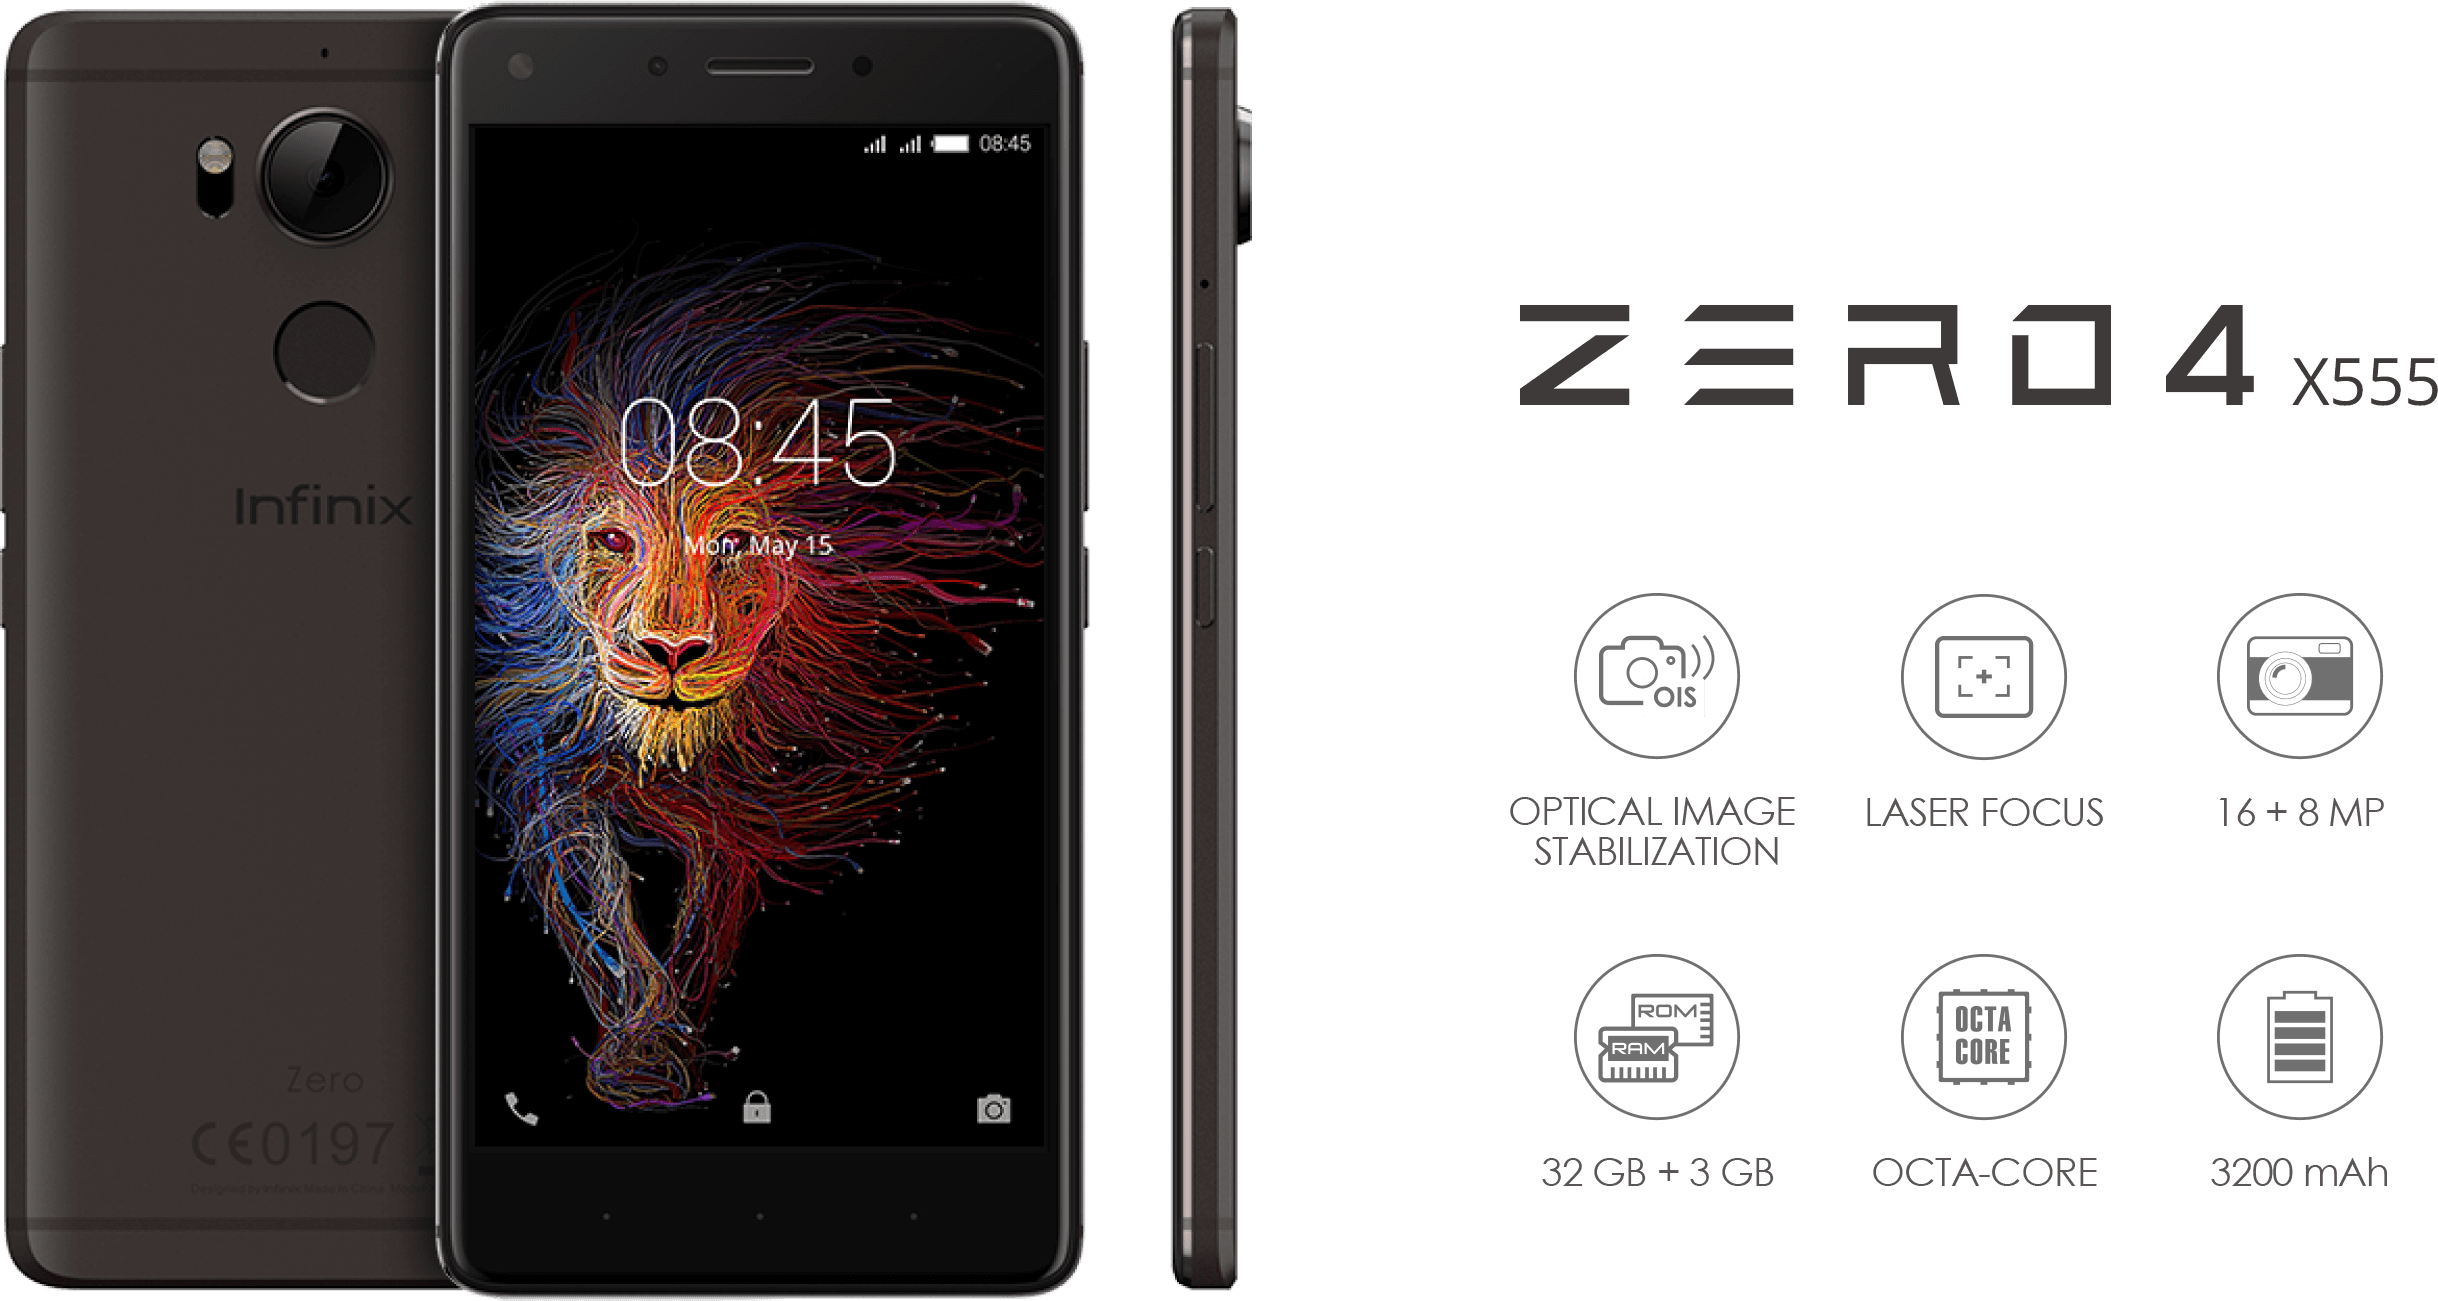 Infinix Zero 4 X555 Phone Prices And Specs